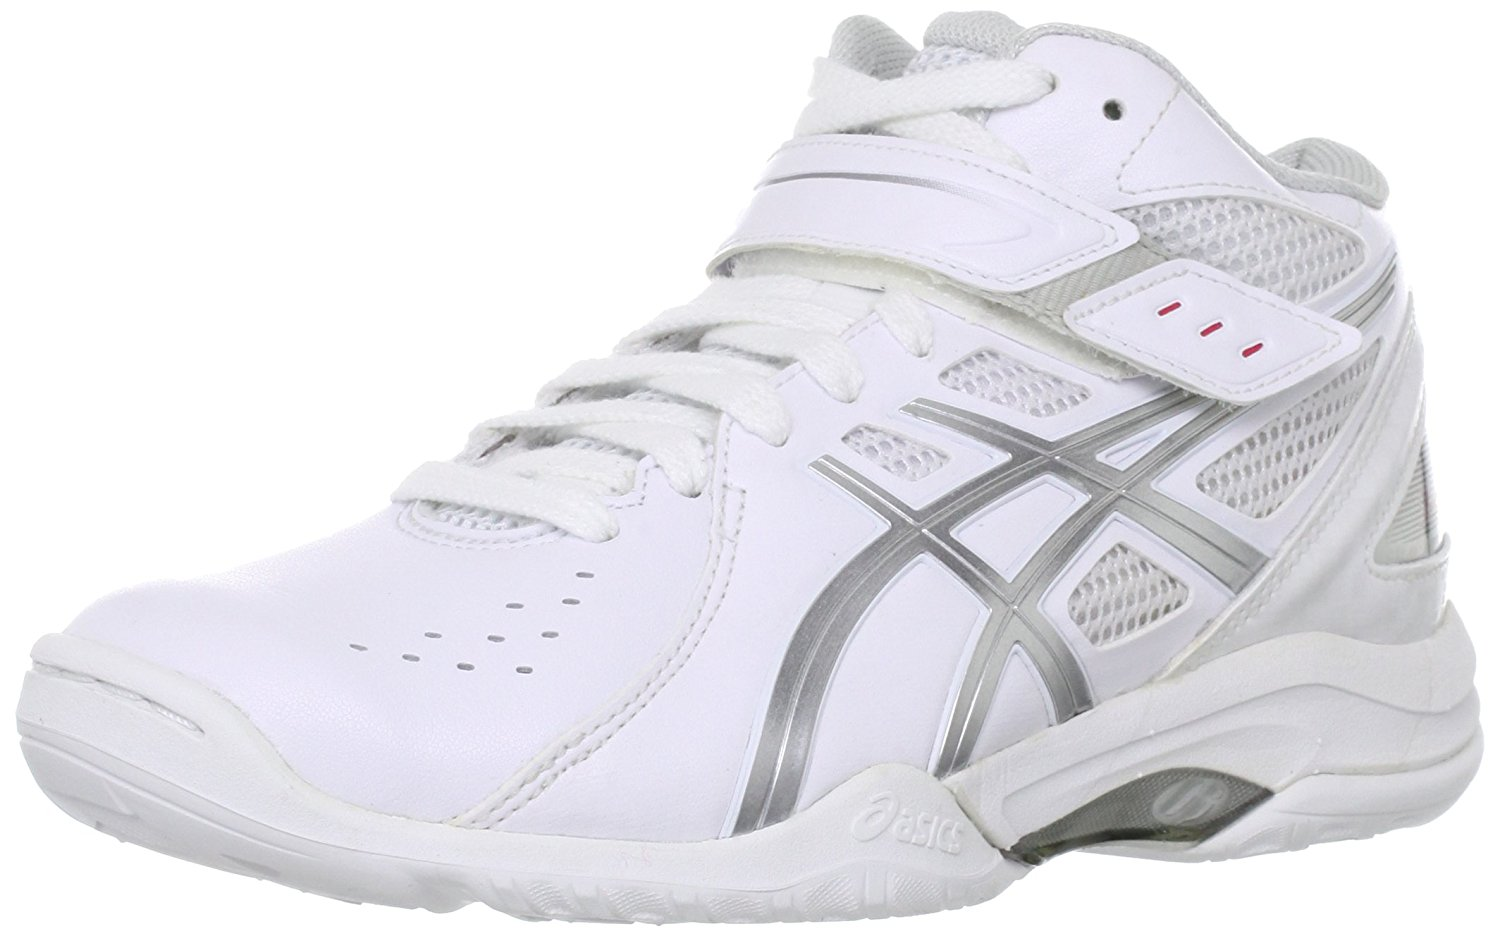 598f4c7bc3b28 Get Quotations · Asics Men s Gelfairy 6 Artificial Leather Basketball Shoes